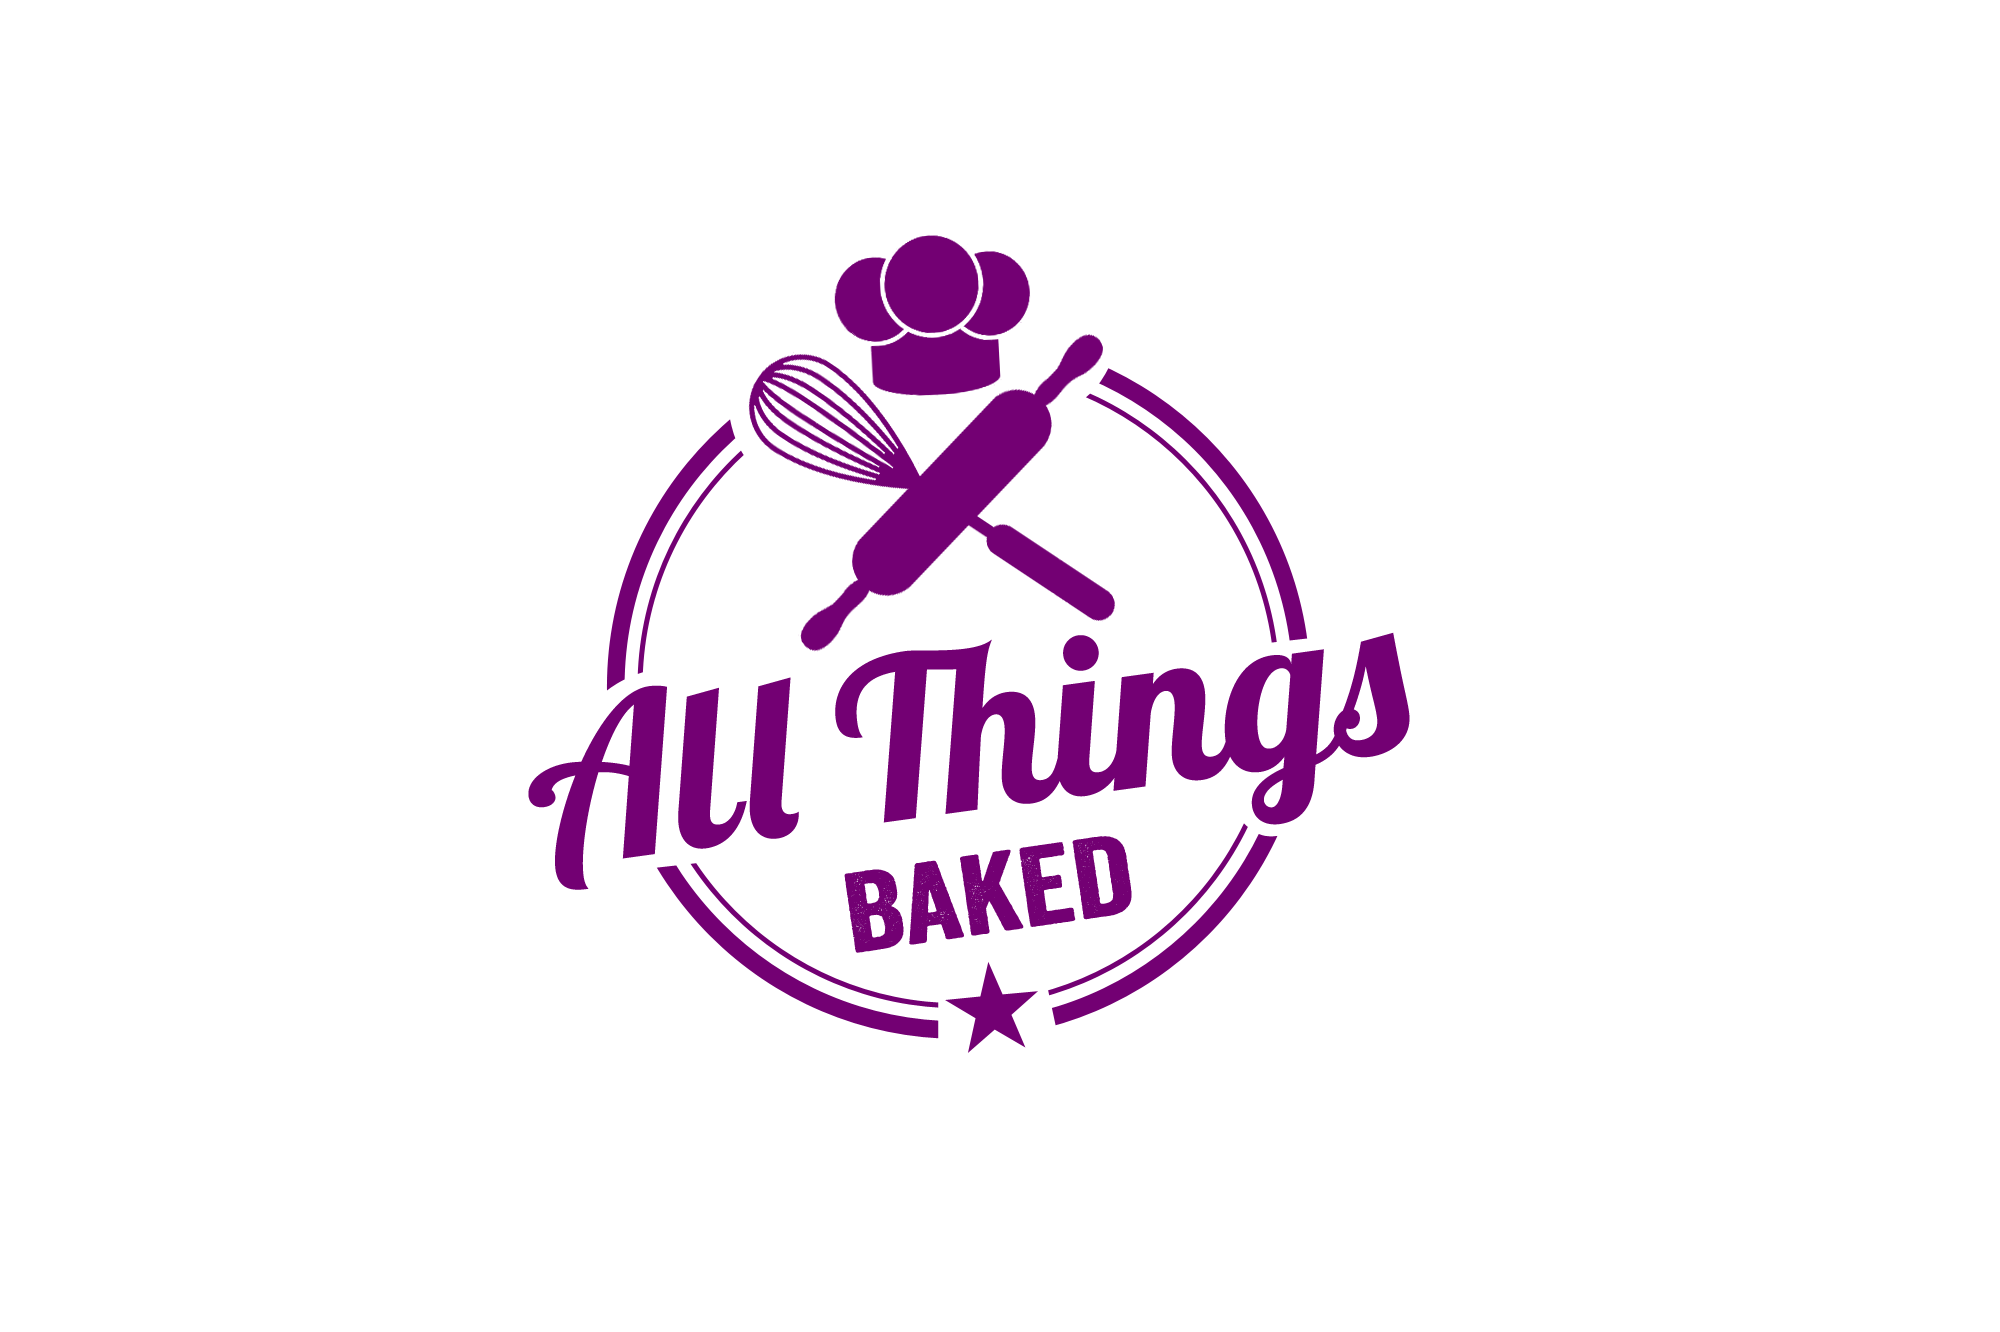 All things baked logo